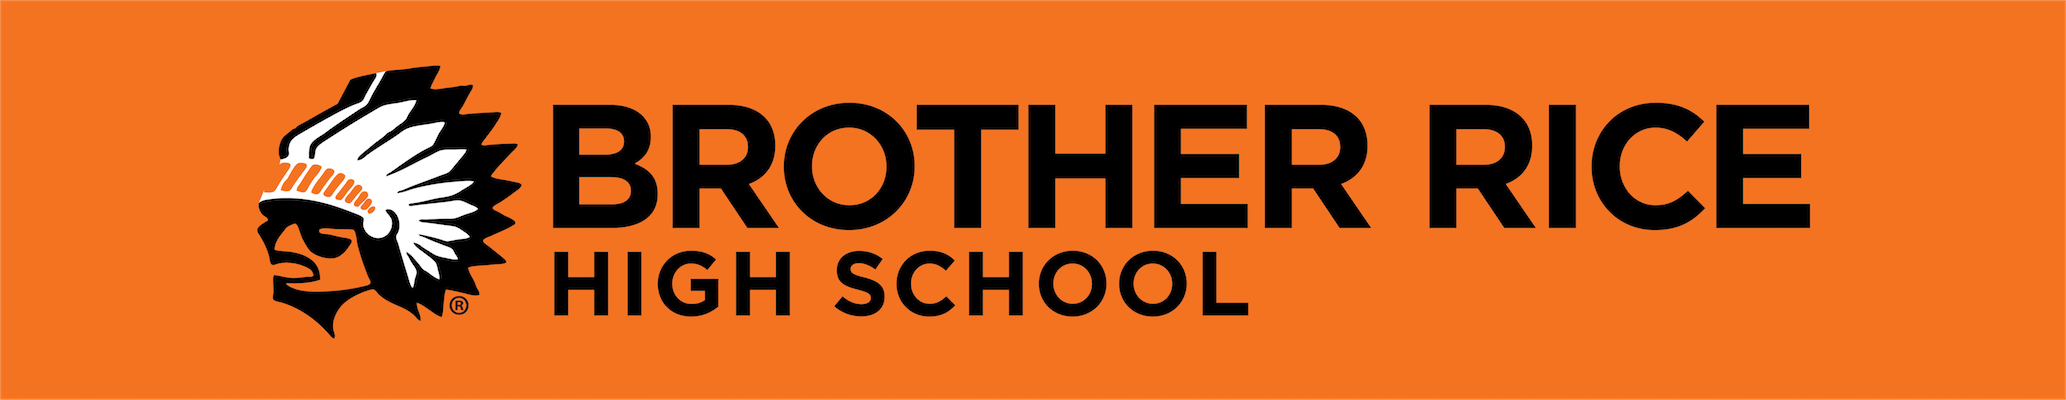 Brother_rice_high_school_admissions_logo_with_orange_background_%281%29